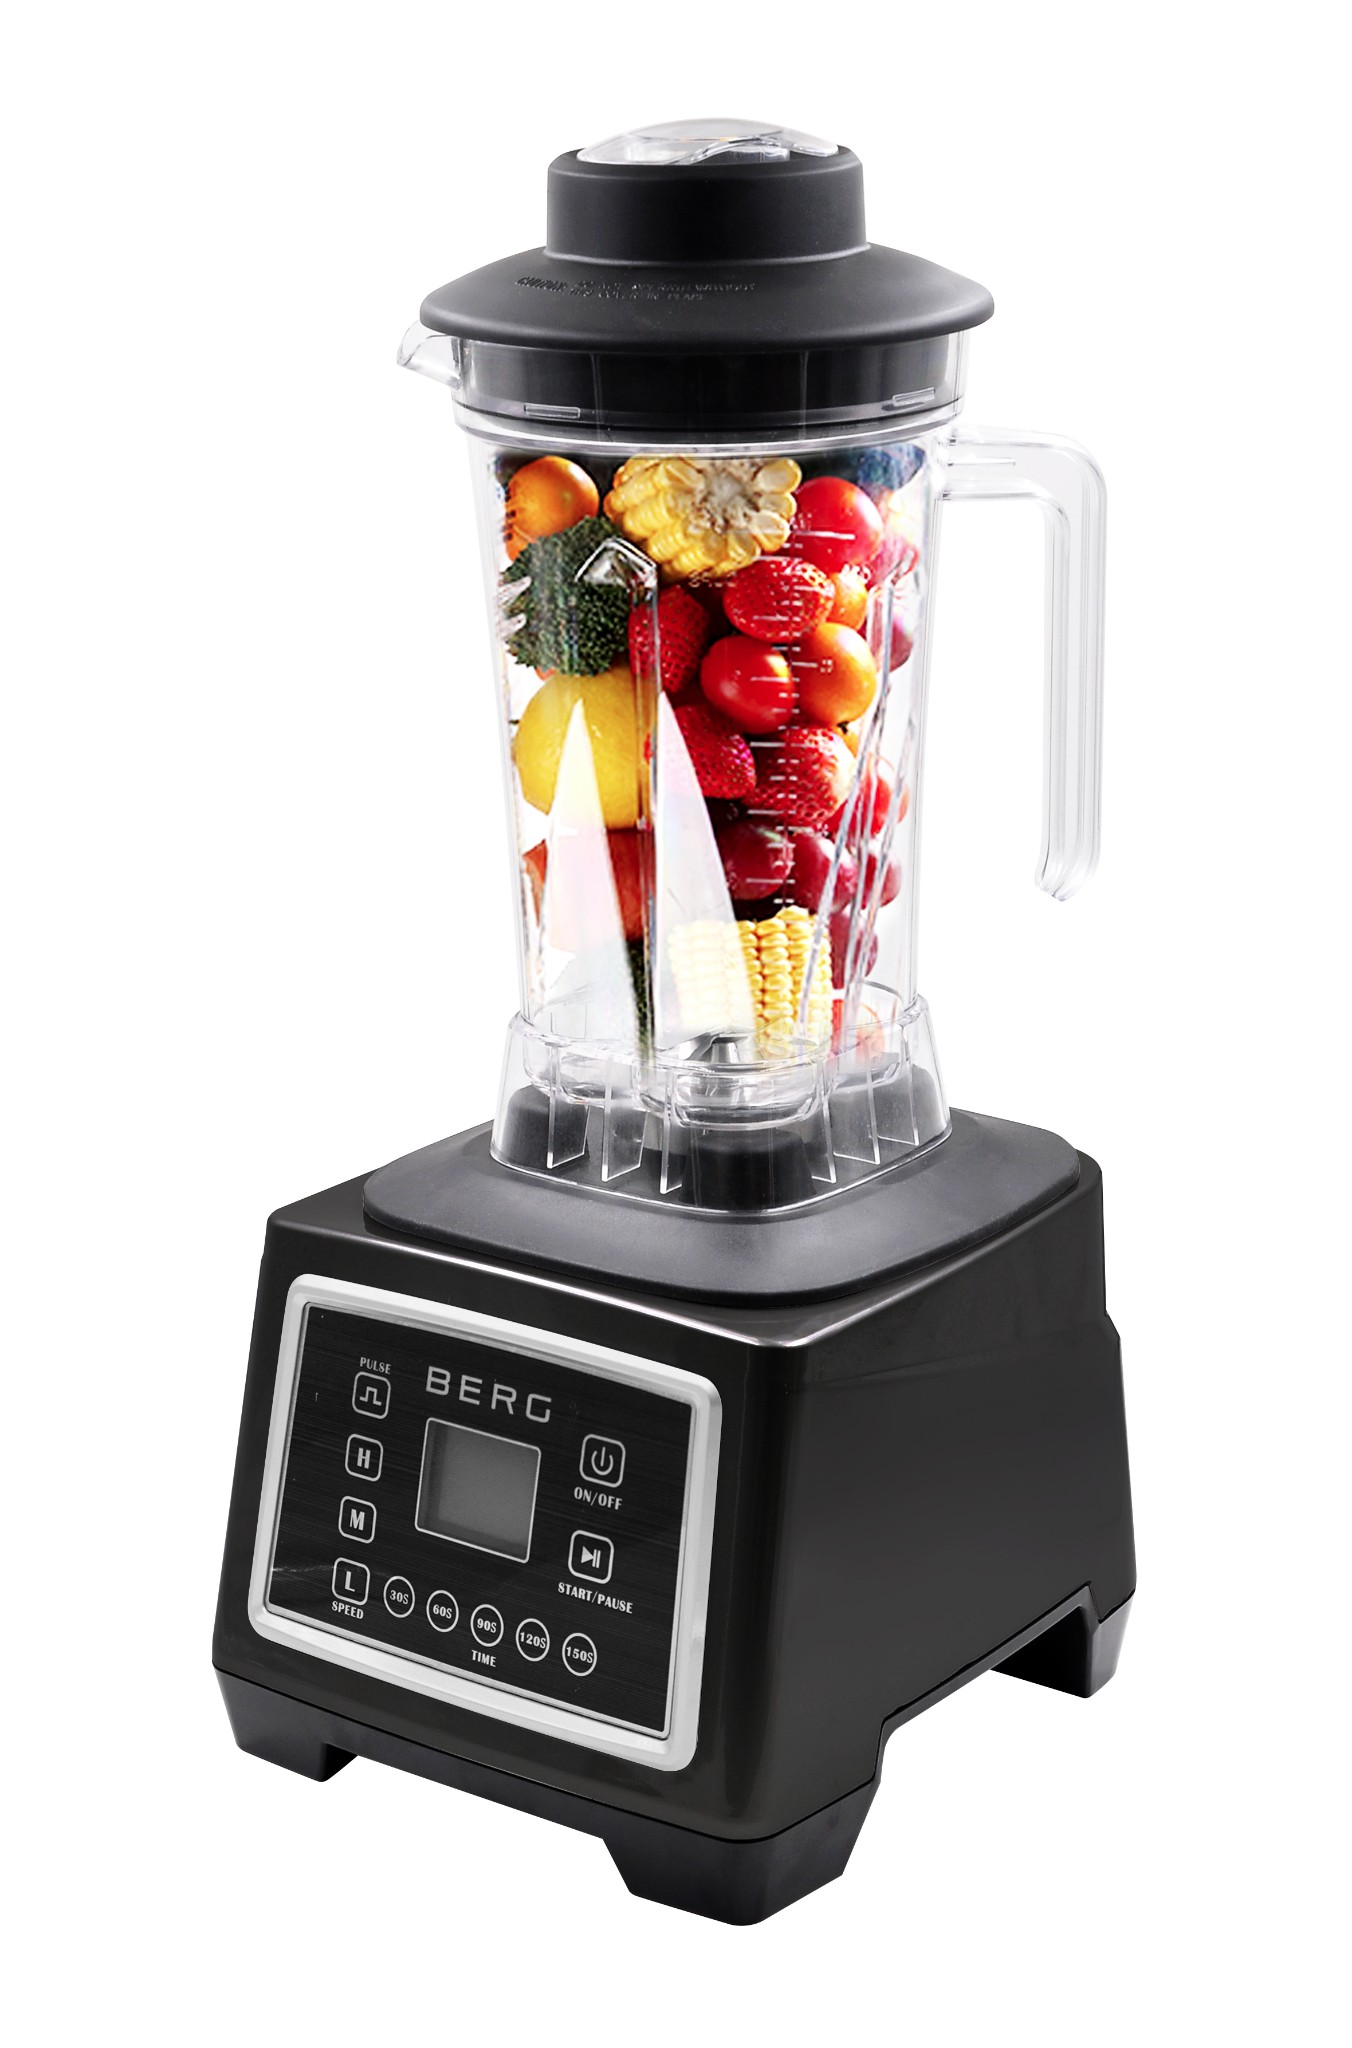 Berg J100 Pro Slow Juicer Review : BERG 2200W 3HP SMART COMMERCIAL FOOD BLENDER SMOOTHIE MAKER ICE CRUSHER